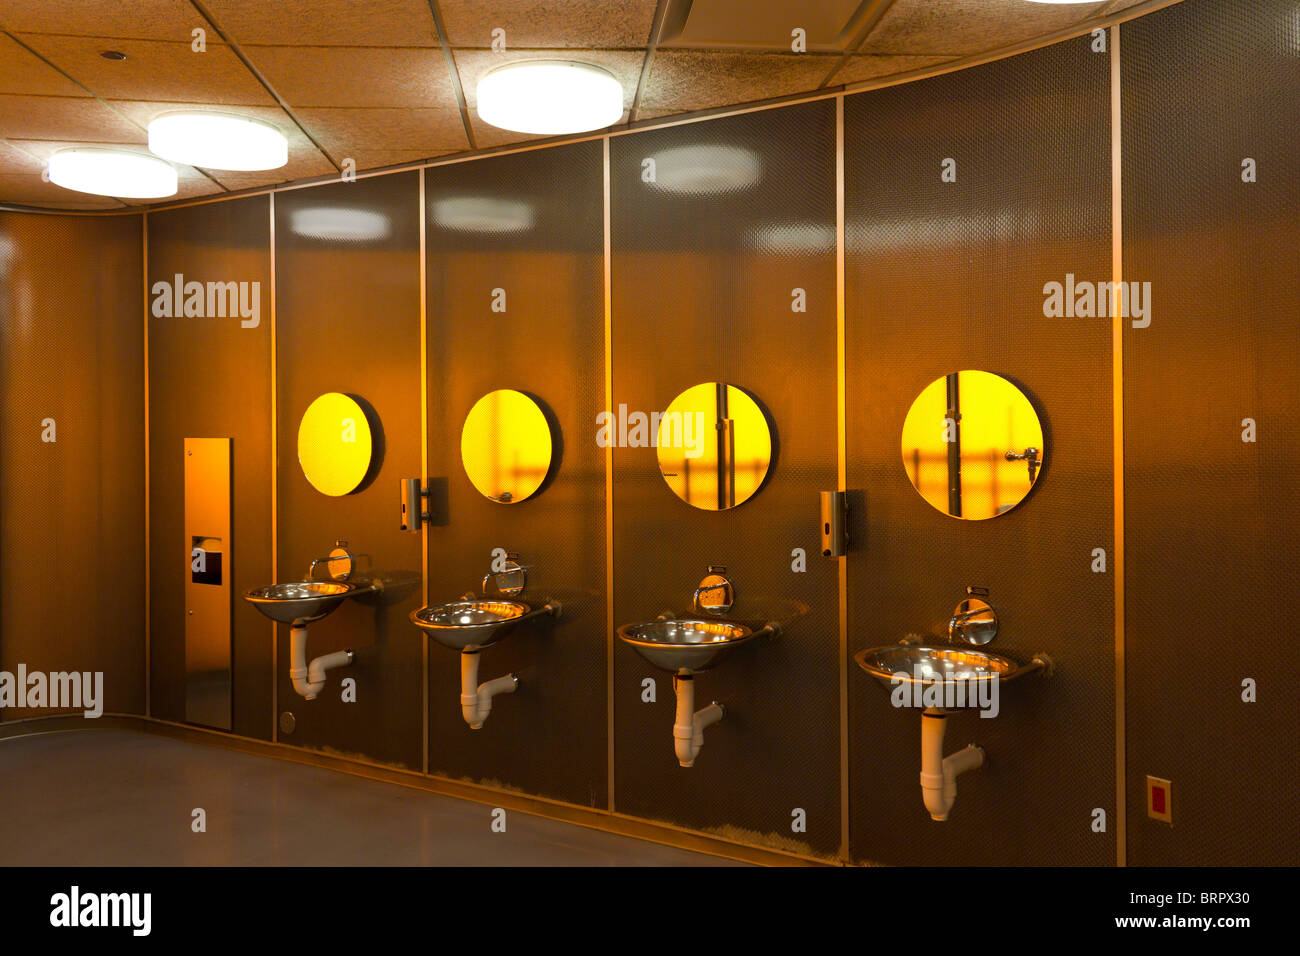 urinals and sinks, McCormick Tribune Campus Center,  Illinois Institute of Technology, Chicago, USA - Stock Image